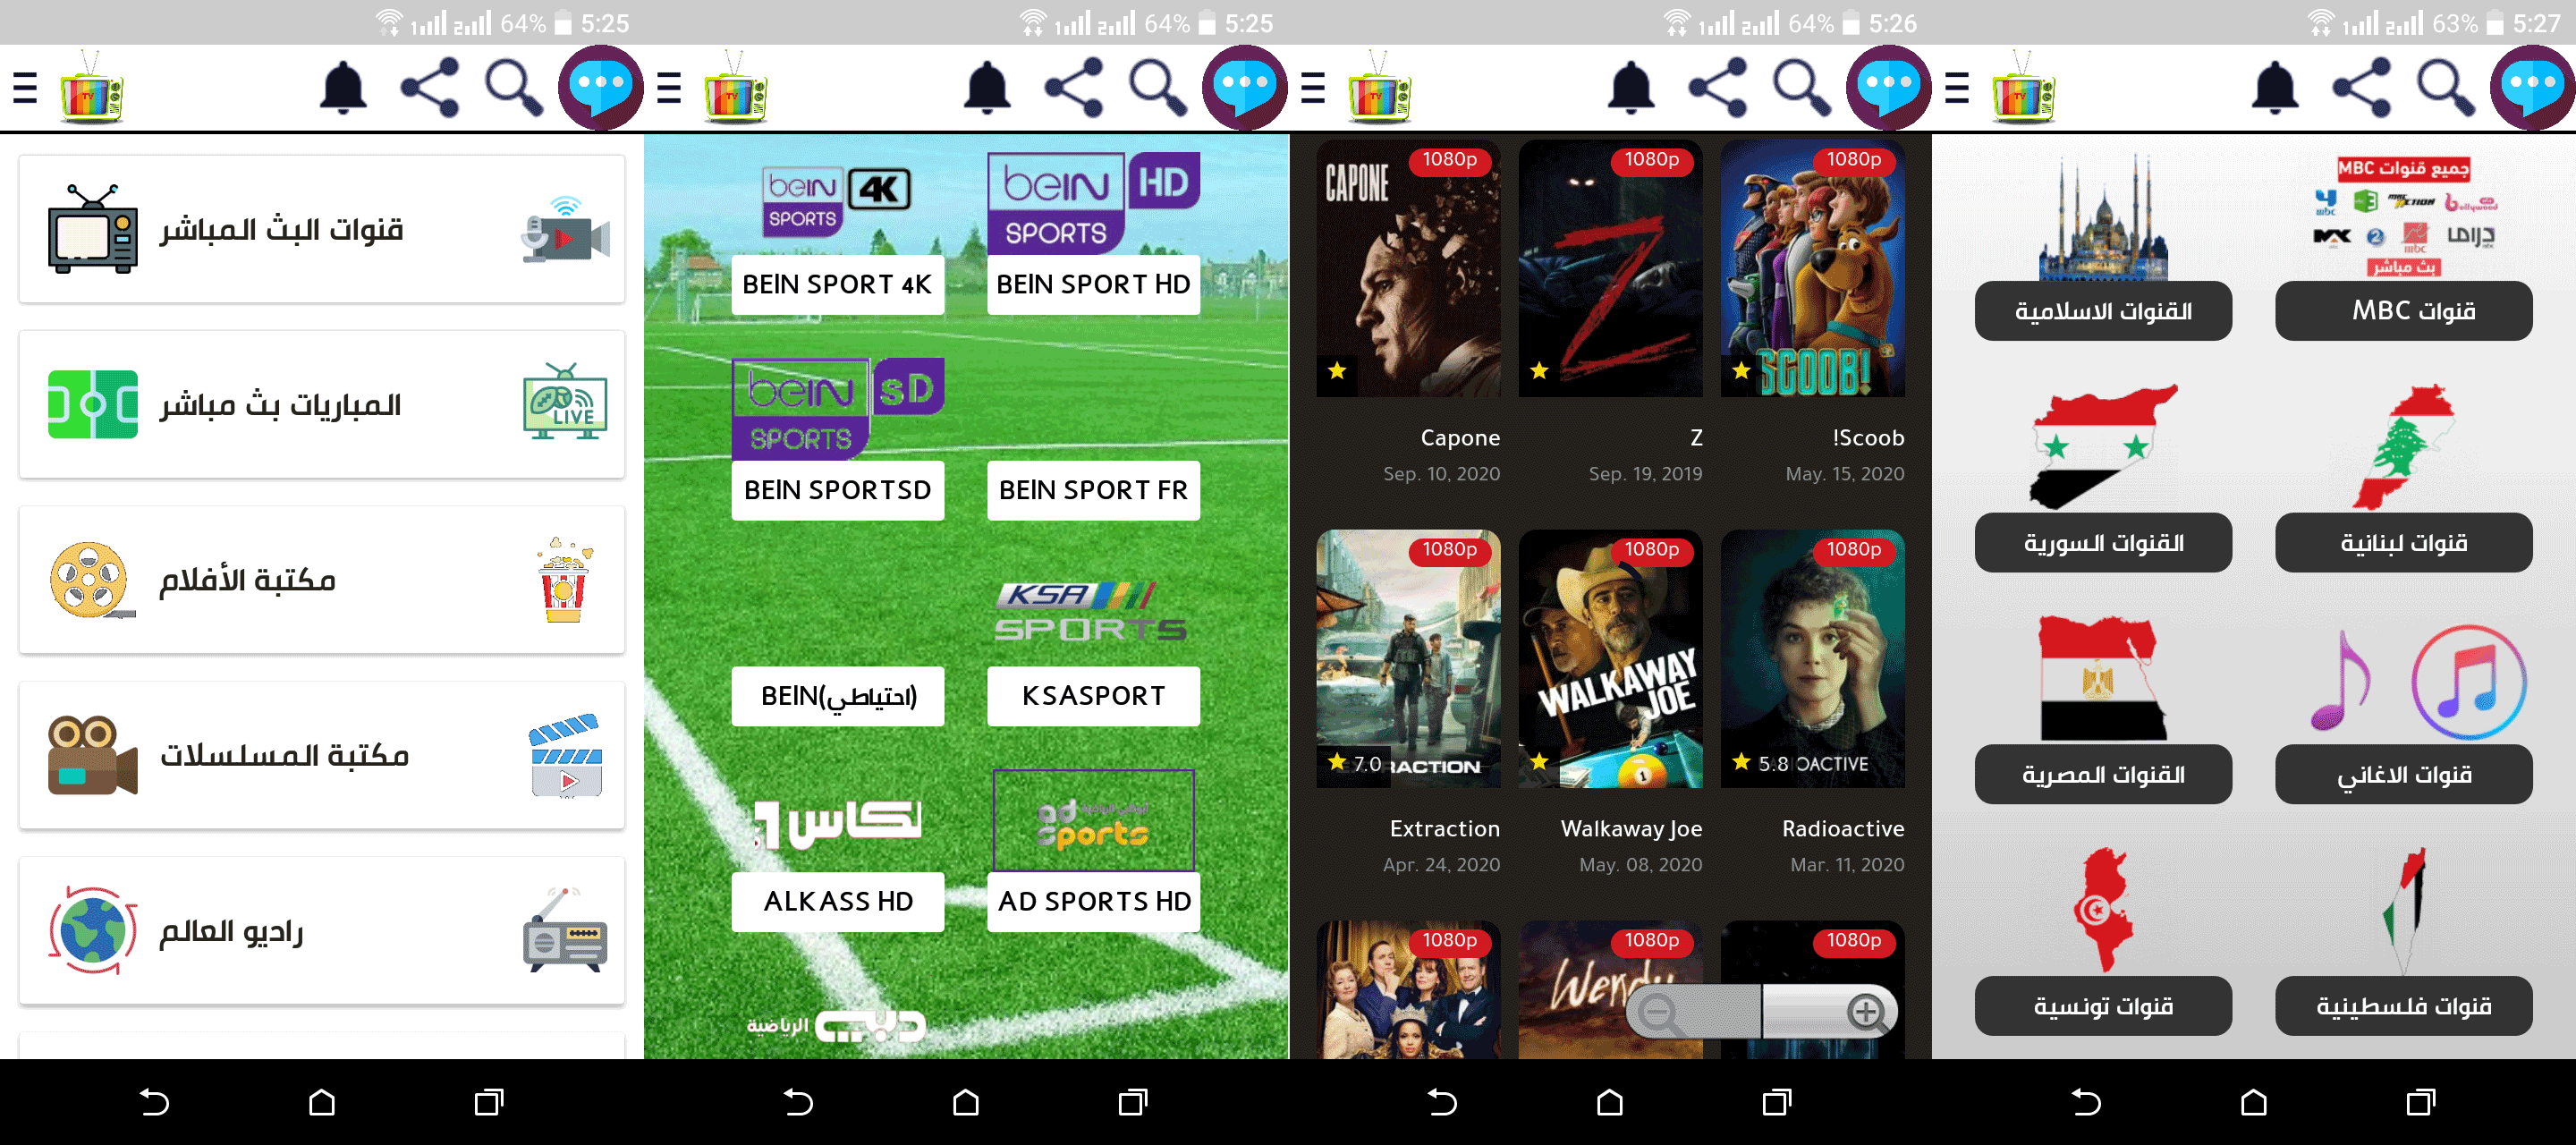 World TV 2020 APK [LATEST] ANDROID 2